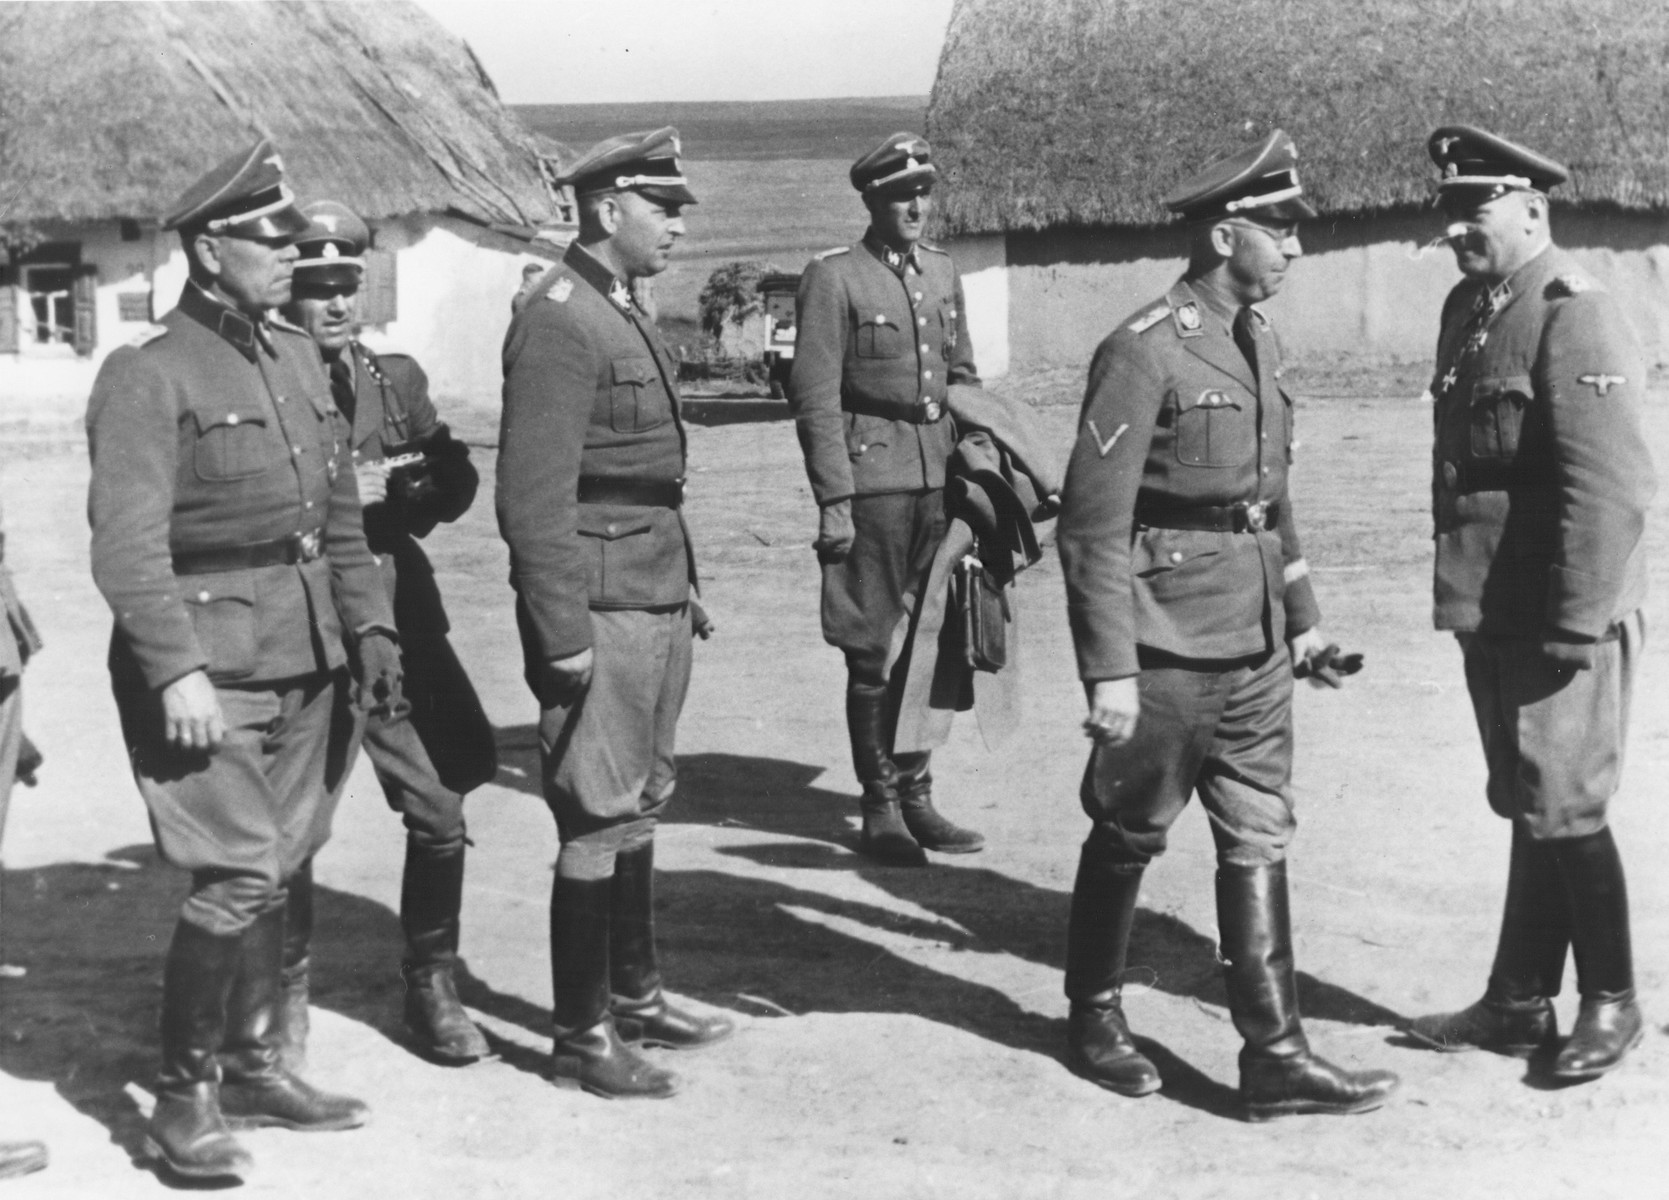 Reichsfuehrer-SS Heinrich Himmler (second from right) confers with Waffen-SS Armored Division Wiking chief, SS-Brigadefuehrer and Major General Felix Steiner (right) during a visit to a village.  Steiner was commander of the Wiking Division from December 1940 through May 1943. Himmler may have visited the Wiking Division during his visits to Waffen-SS and Einsatzgruppe D units in Kriwoj Rog and Nikoljew on October 3-5, 1941.  During this tour, Himmler ordered that gas vans be deployed to Nowgorod to kill the mentally ill.  In conjunction with Himmler's visit, a teilkommando of Einsatzgruppe D shot Jewish women for the first time. [Himmler Dienstkalender, pp.224-25]  Original caption reads: Truppenbetreuung SS Division Wiking.